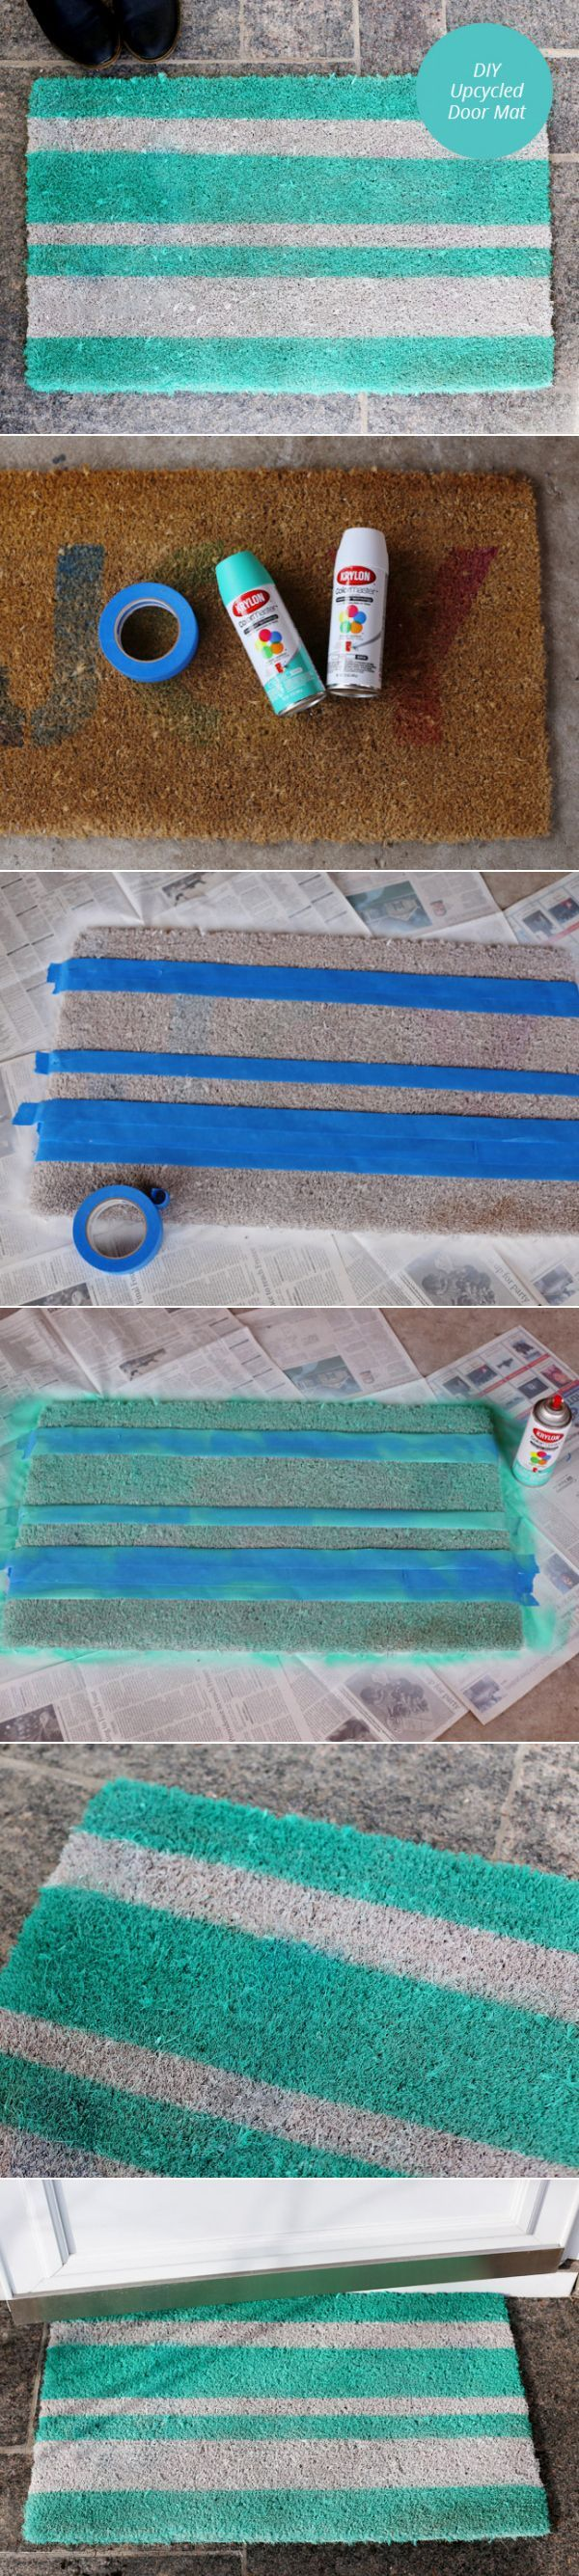 DIY Upcycled Door Mat | From Momtastic | DIY & Crafts